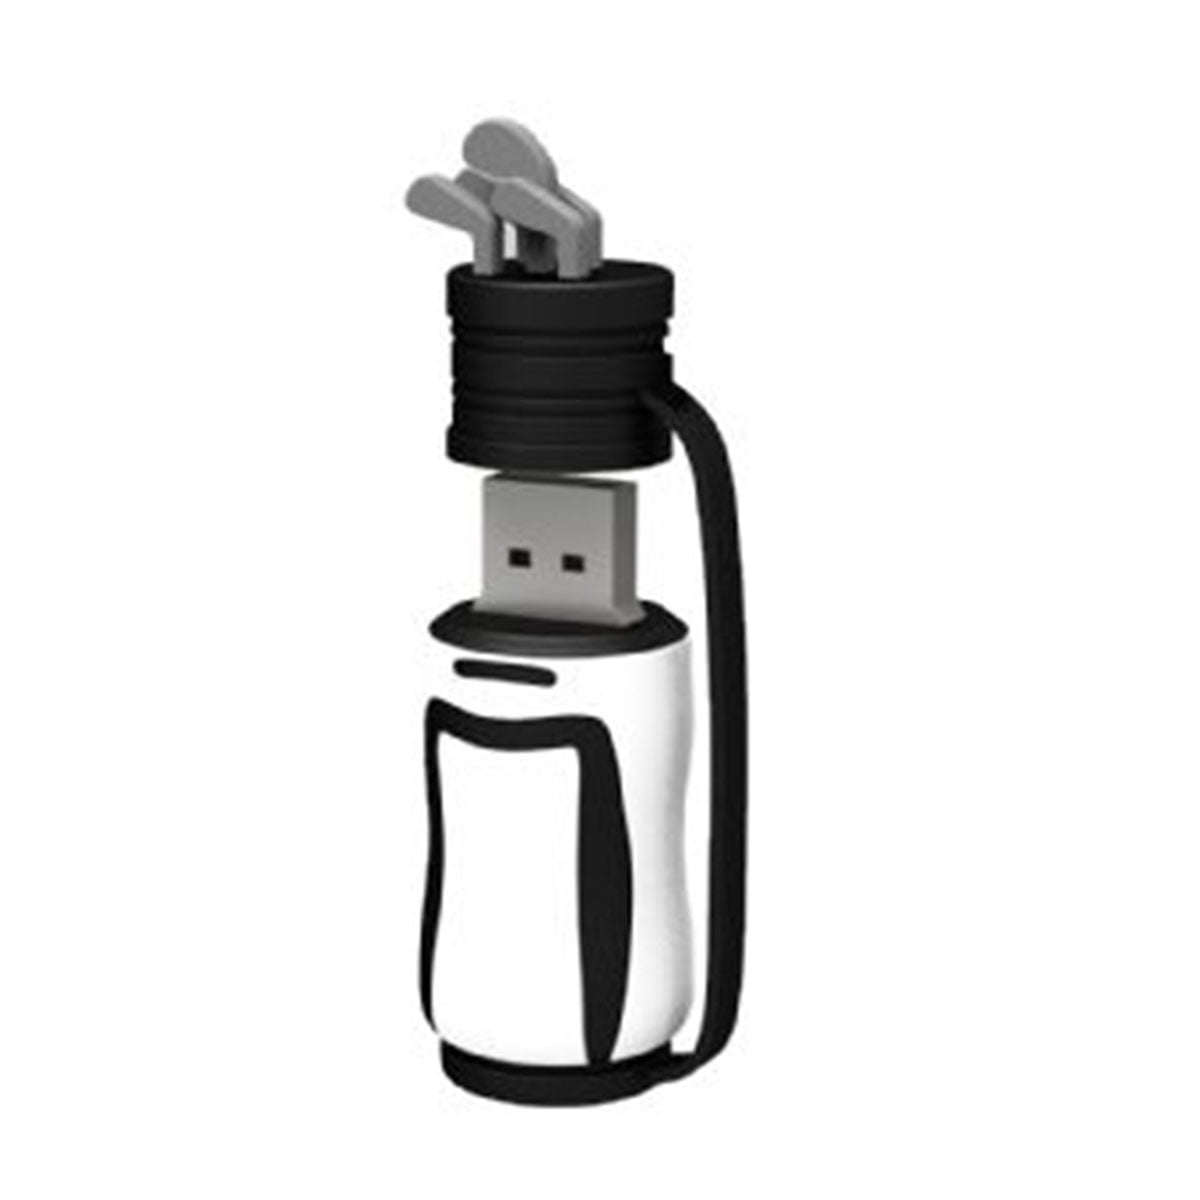 Golf Club PVC Flash Drive-You can change up to 2 of the base PVC colours and print your logo in 1-2 colours in 1 position.